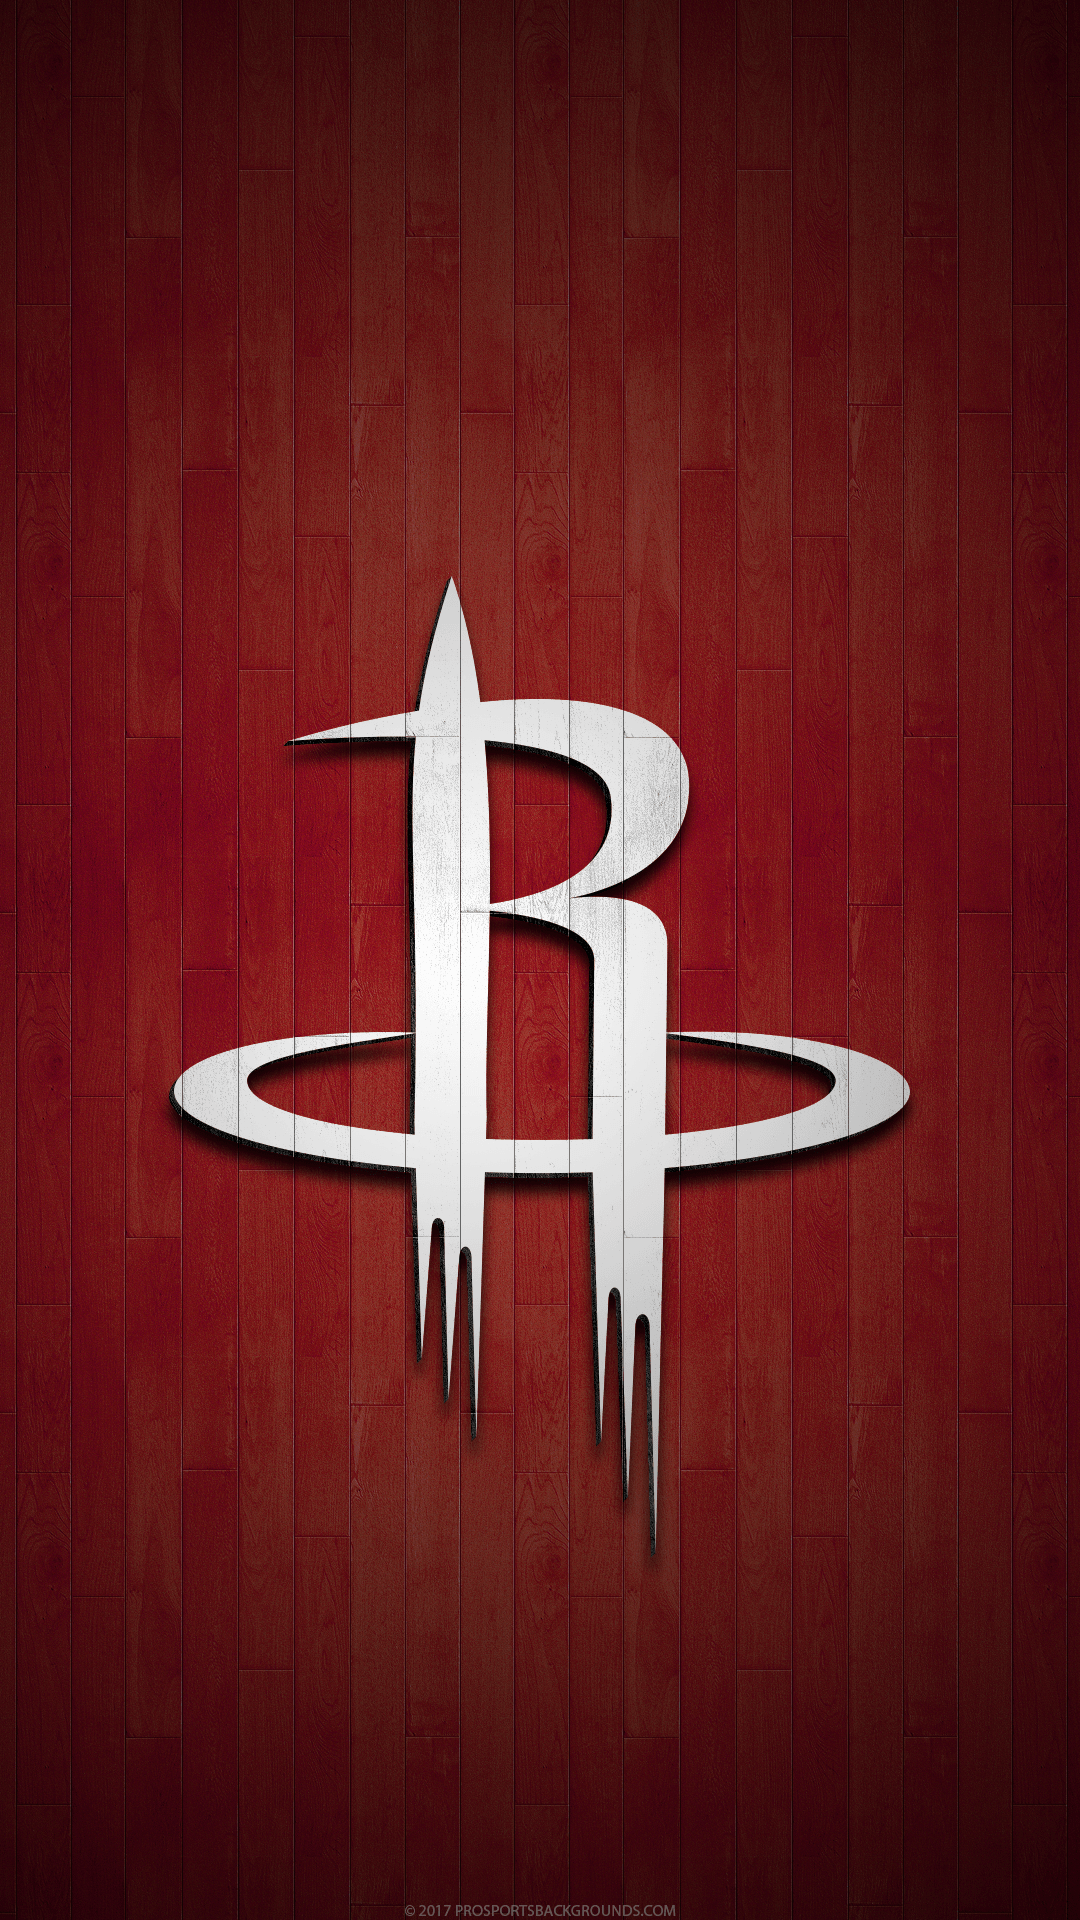 Houston Rockets 2018 Wallpapers - Wallpaper Cave